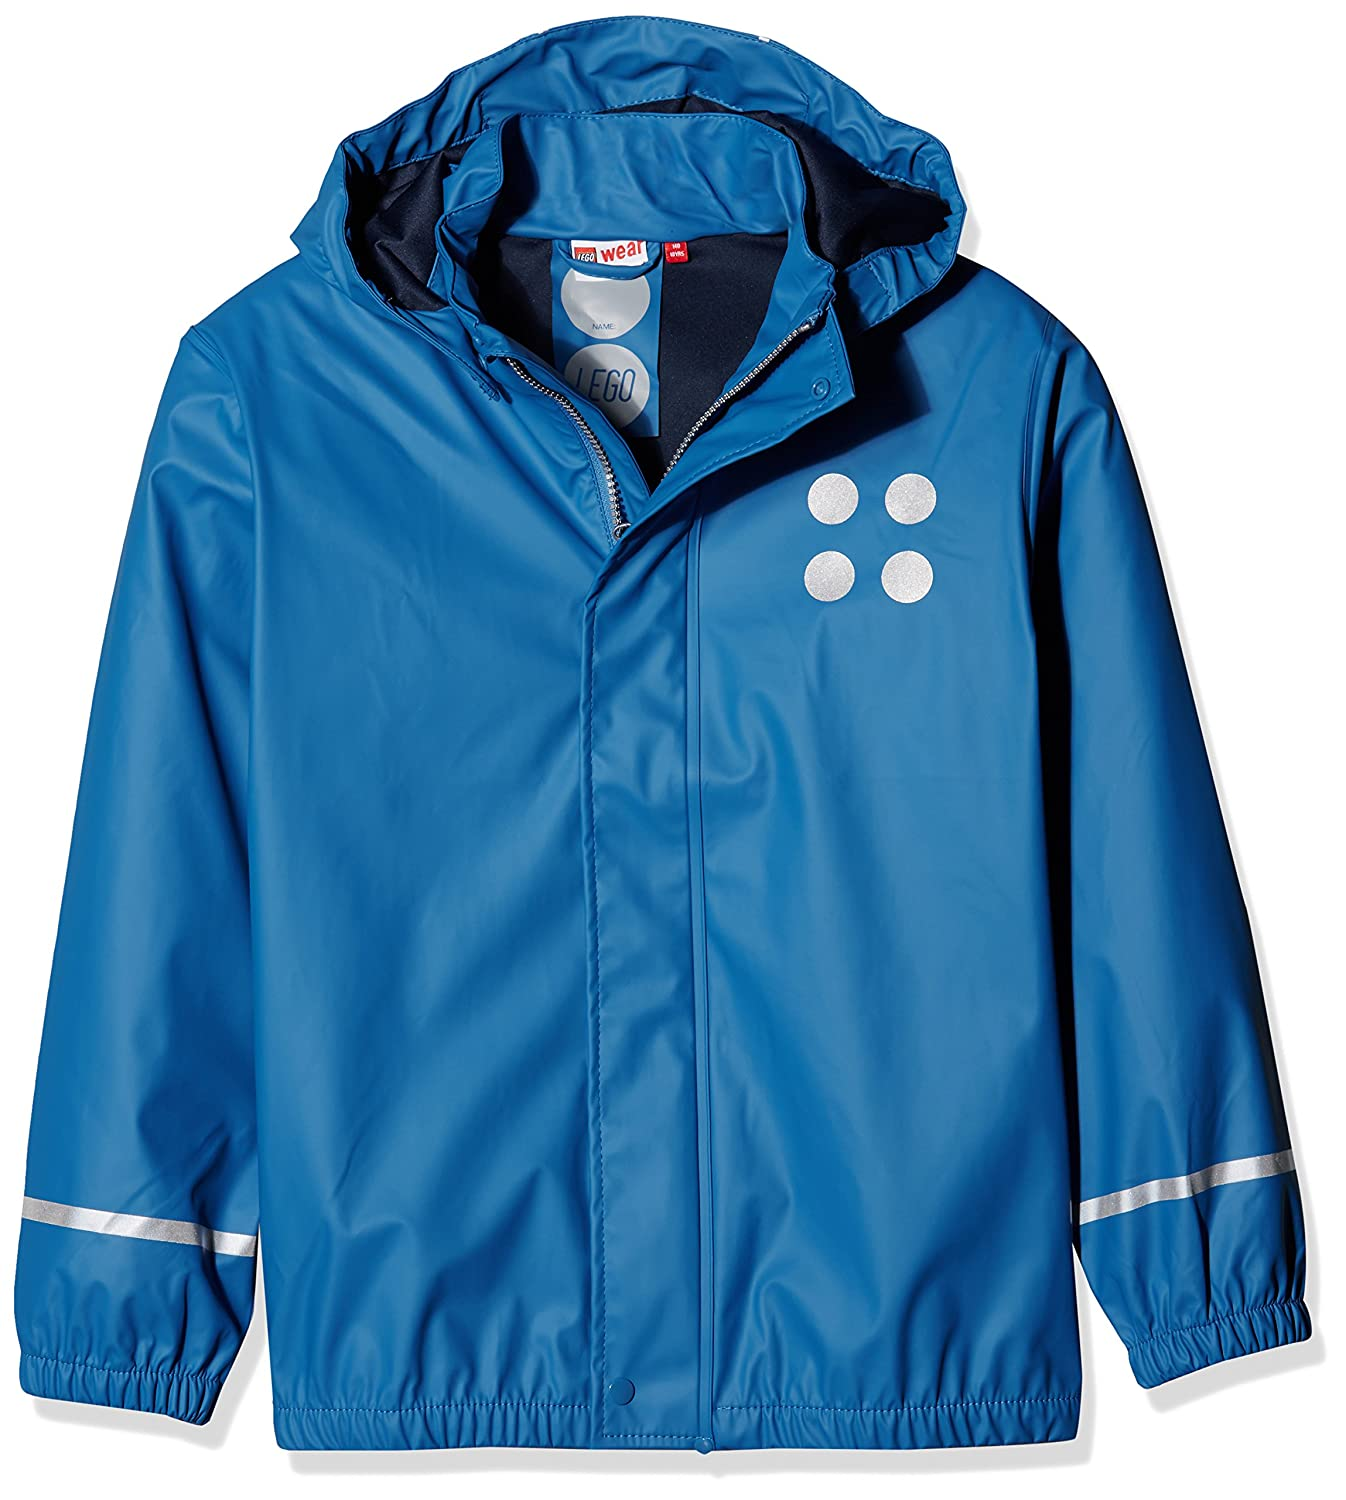 Lego Wear Boy's Rain Jacket Legowear 19456